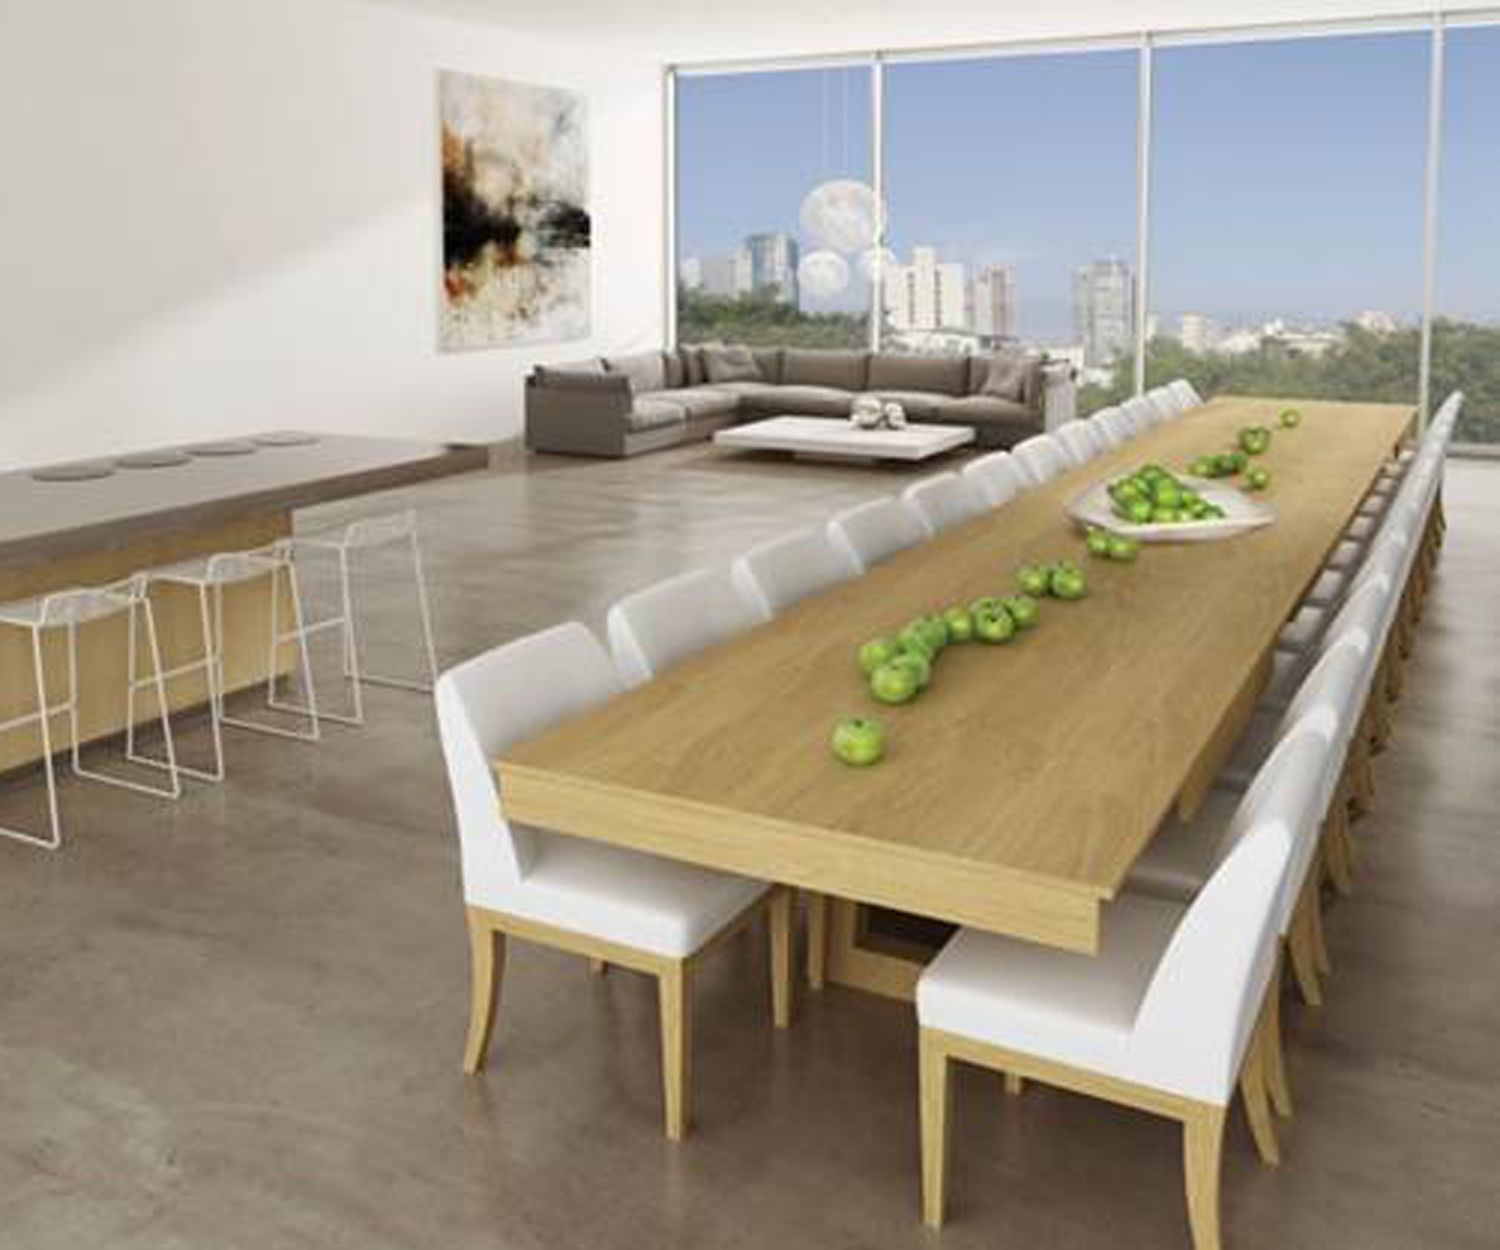 my dream dinning table: mega extending dining table | decor